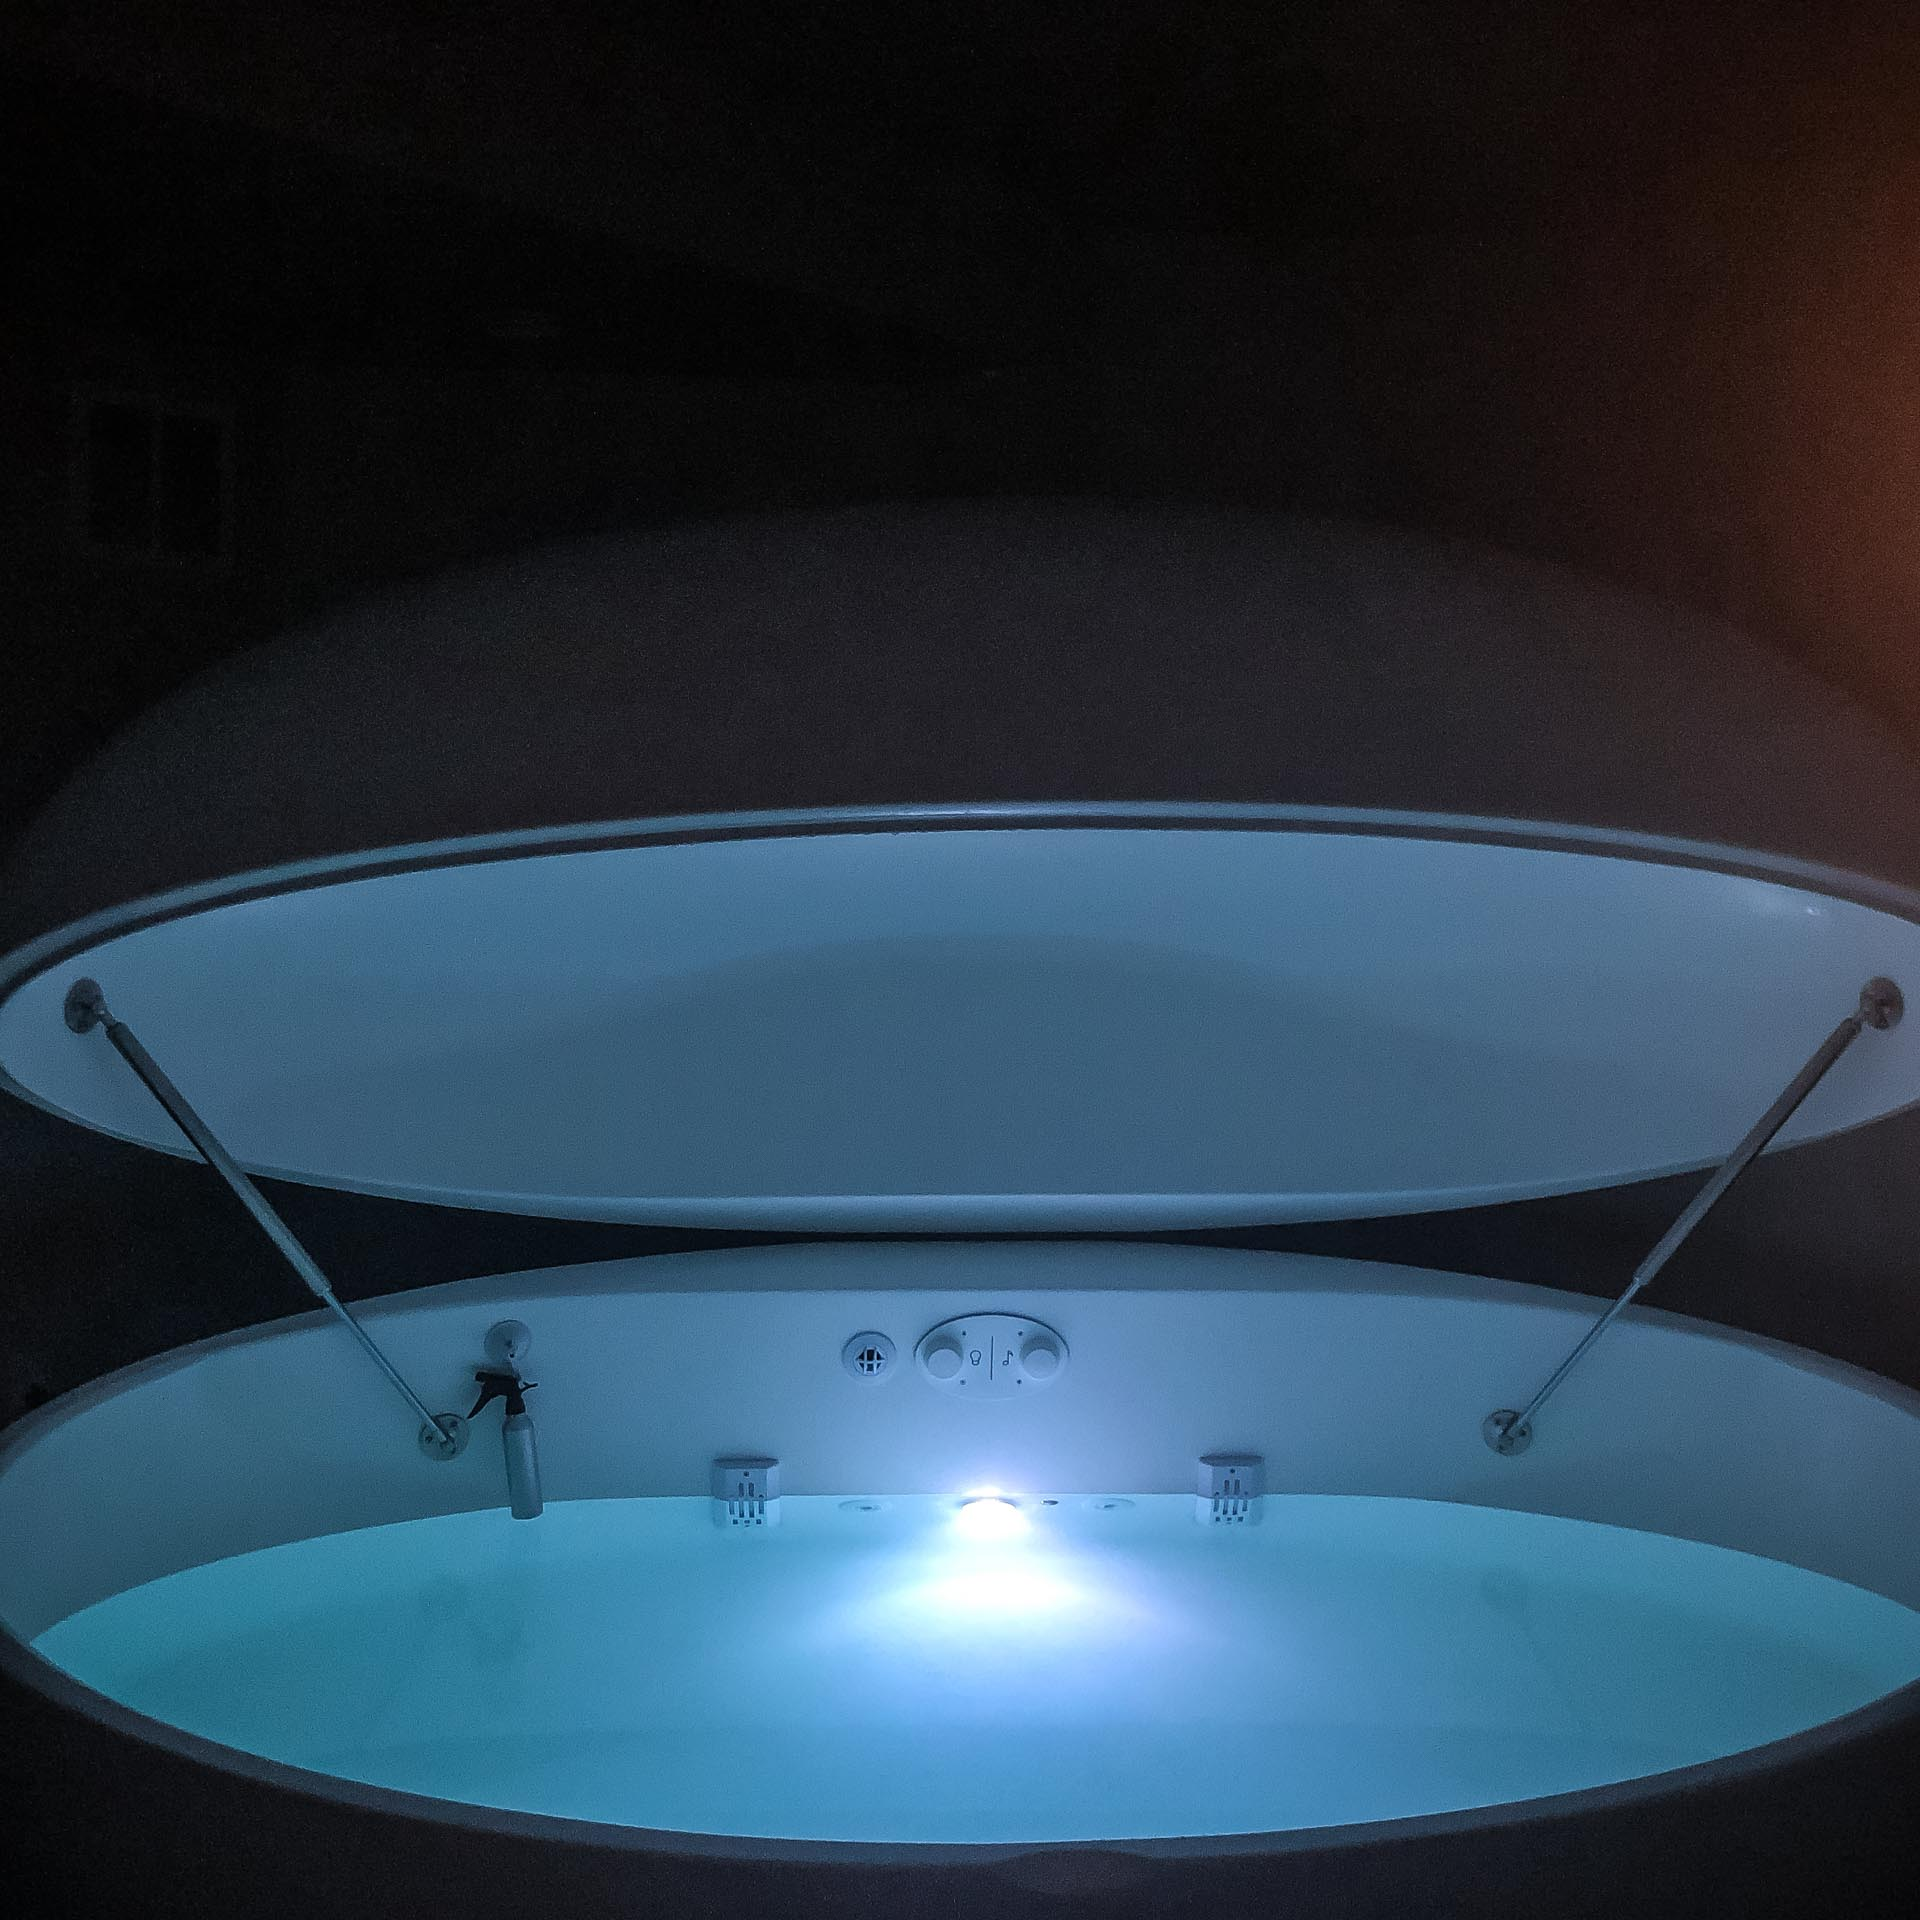 BUOY floatation + rejuvenation is a float spa company based in Neenah, WI. I had the opportunity to try a 60 minute float session. I came out feeling refreshed, relaxed and rejuvenated.